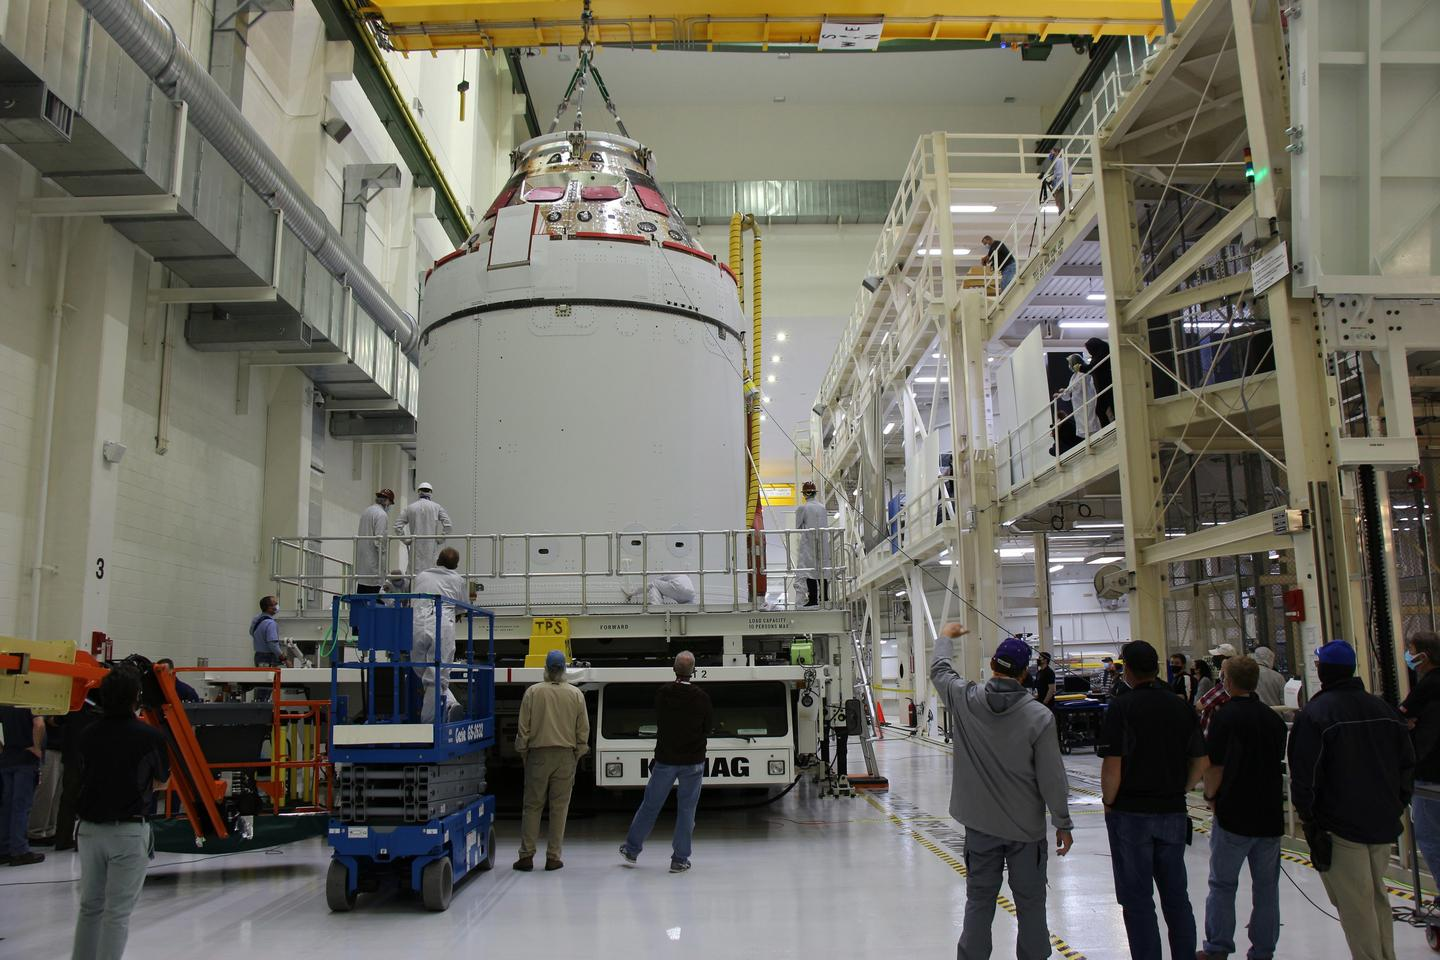 The Orion spacecraft at the Kennedy Space Center